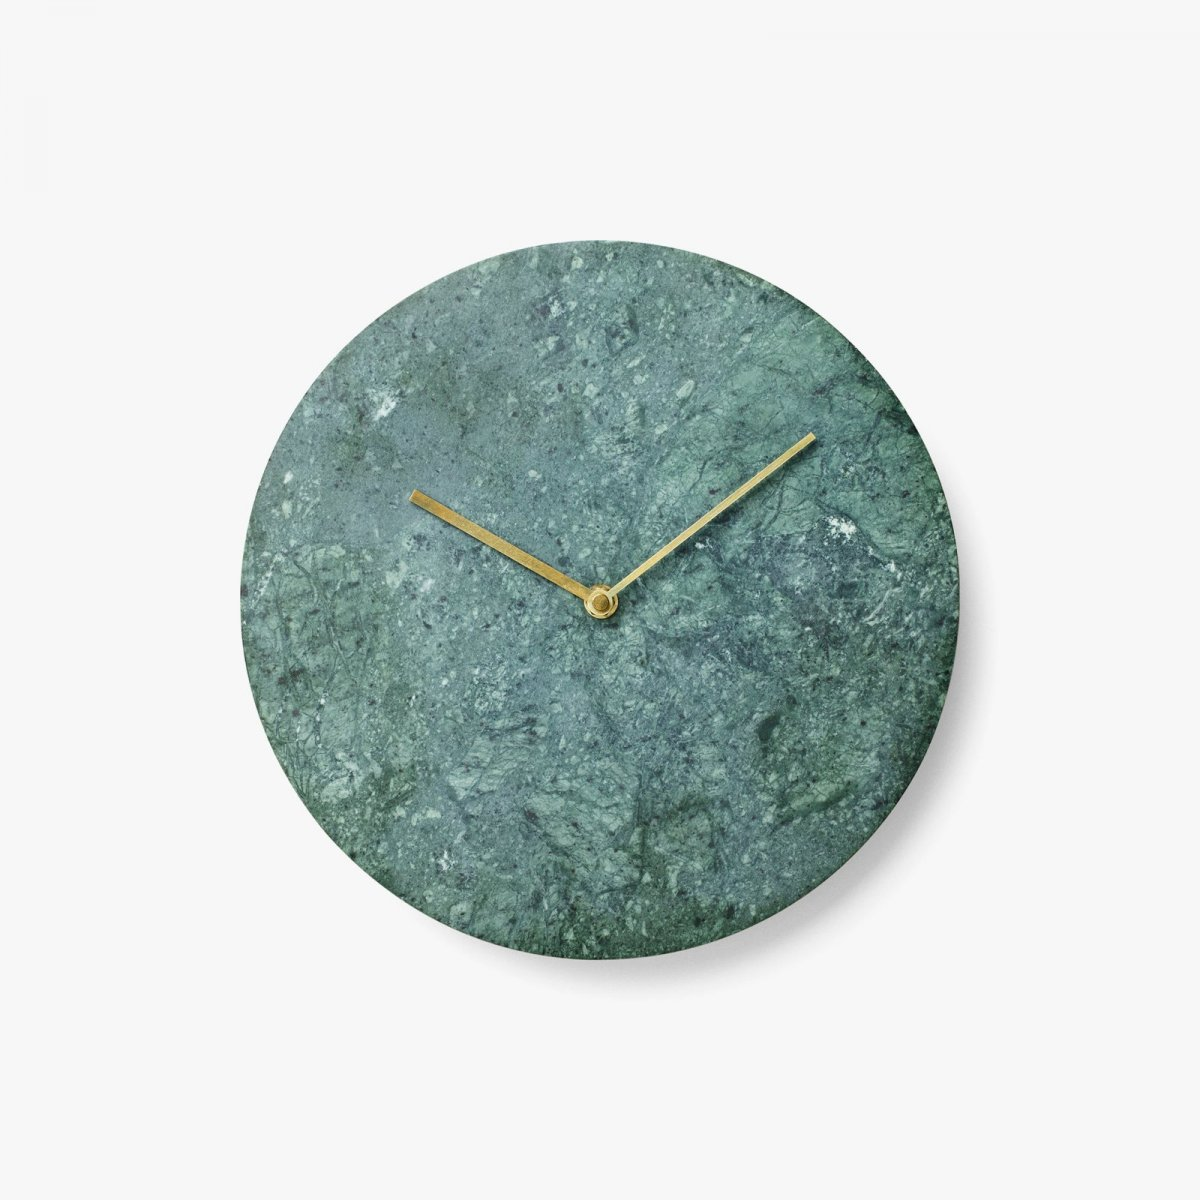 Marble Wall Clock, green.